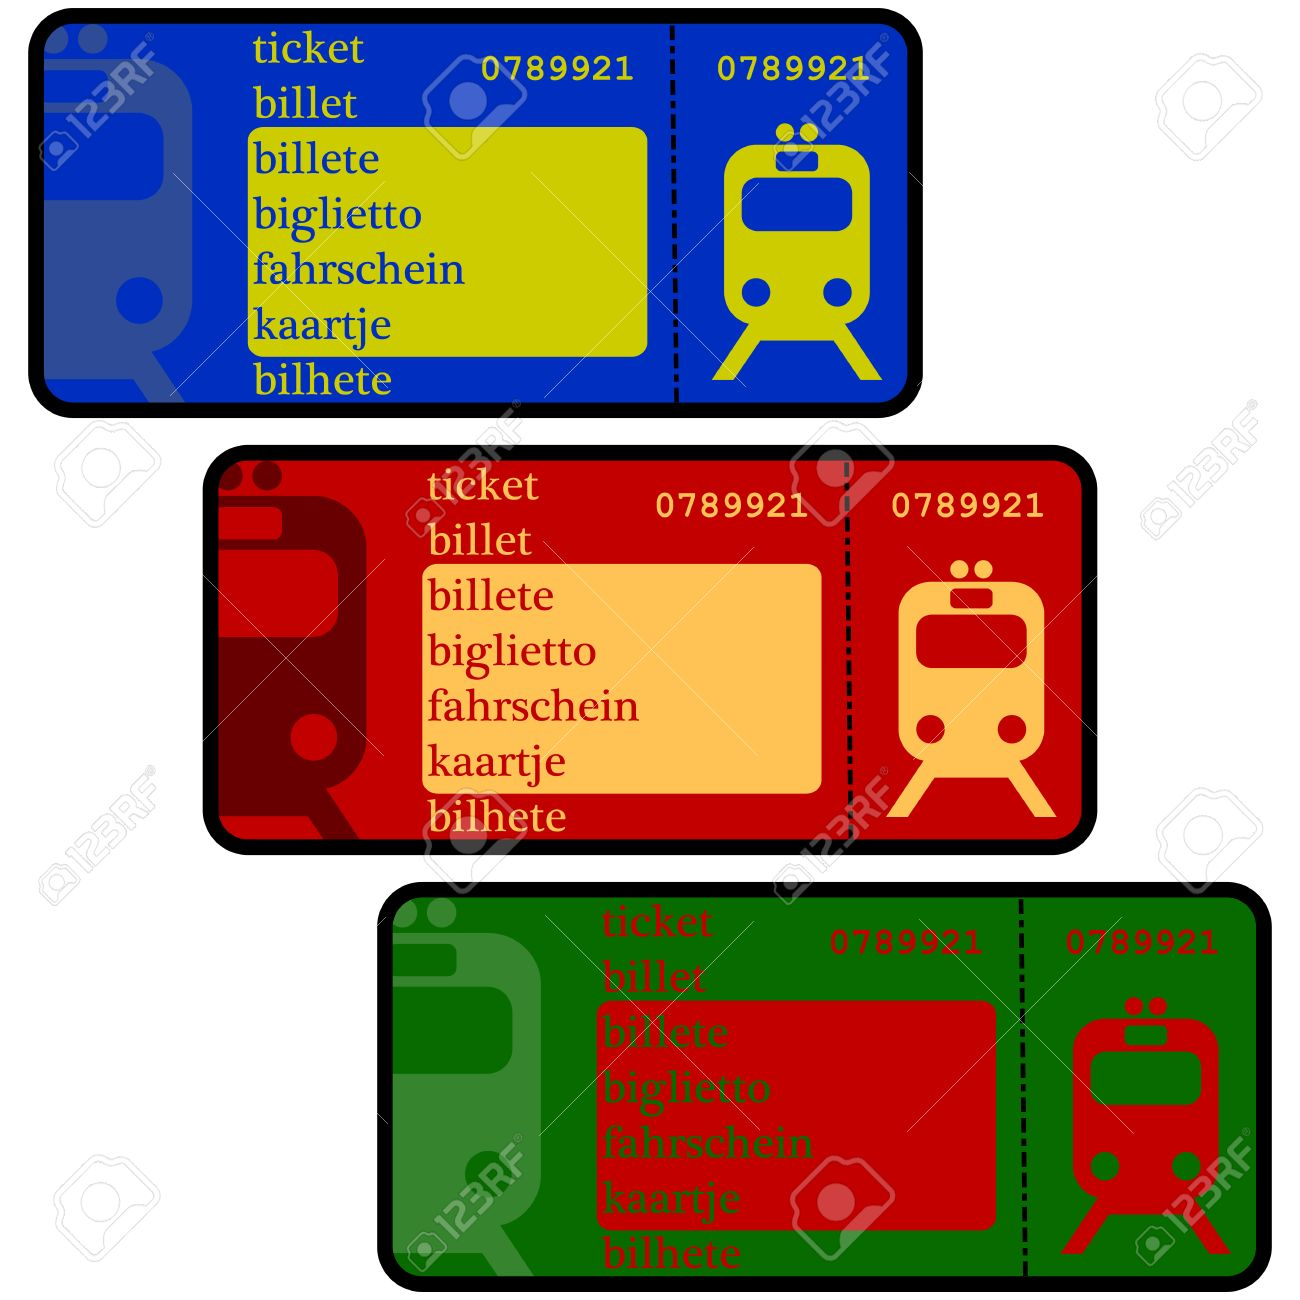 cartoon illustration showing train ticket templates in different